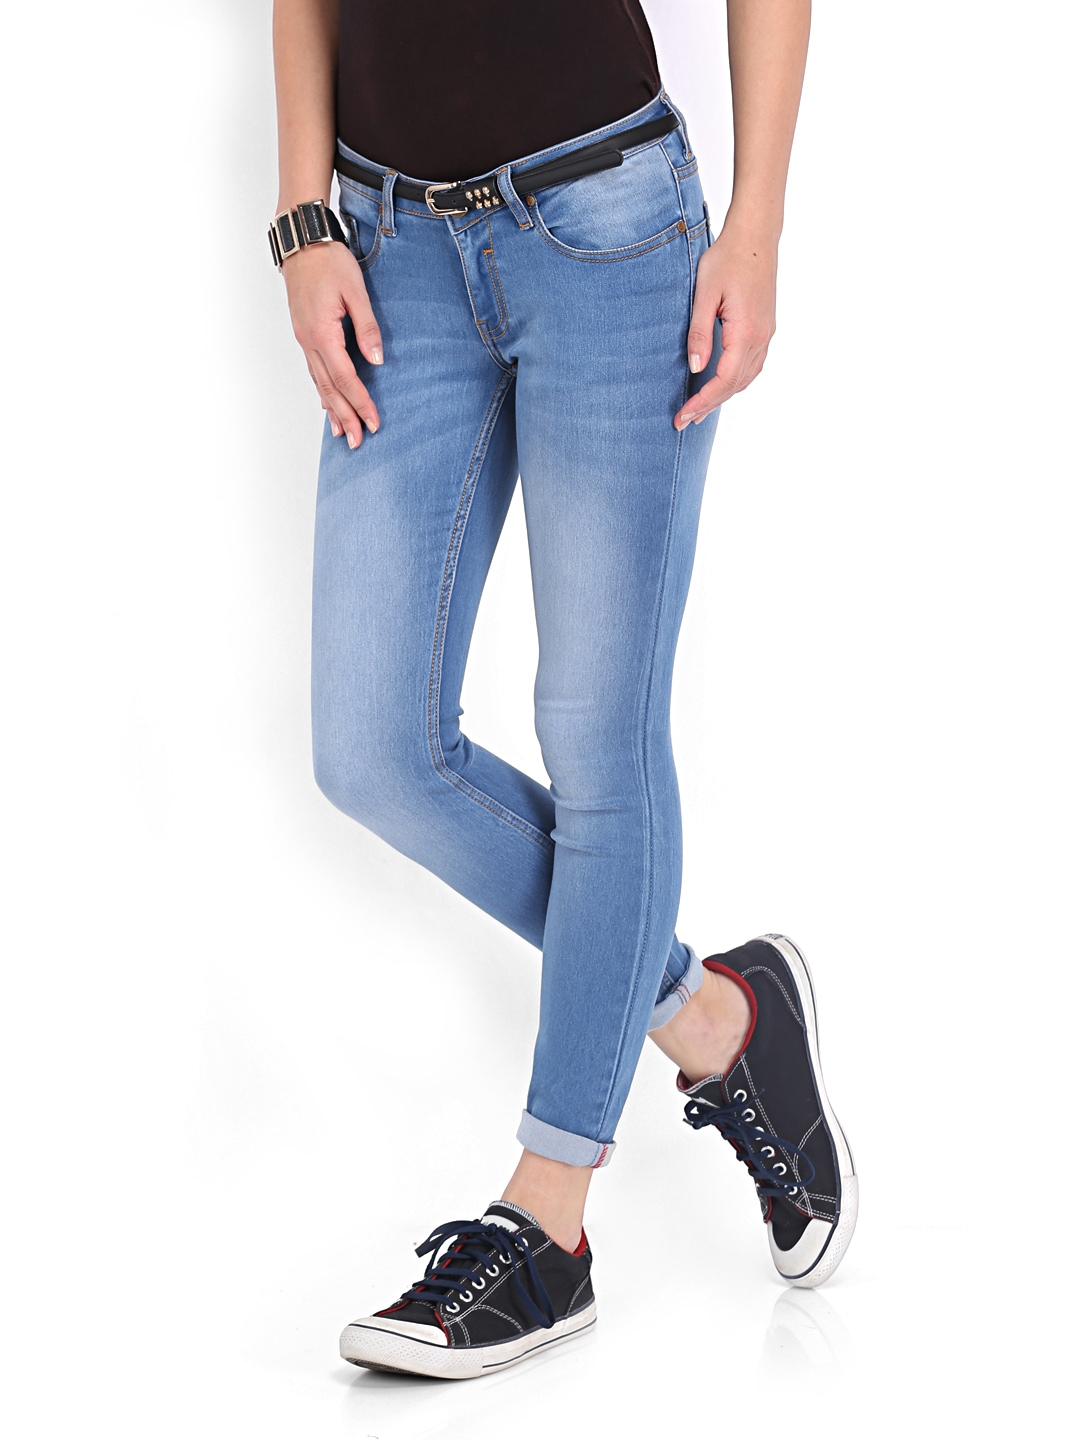 lee cooper jeans for women - photo #42